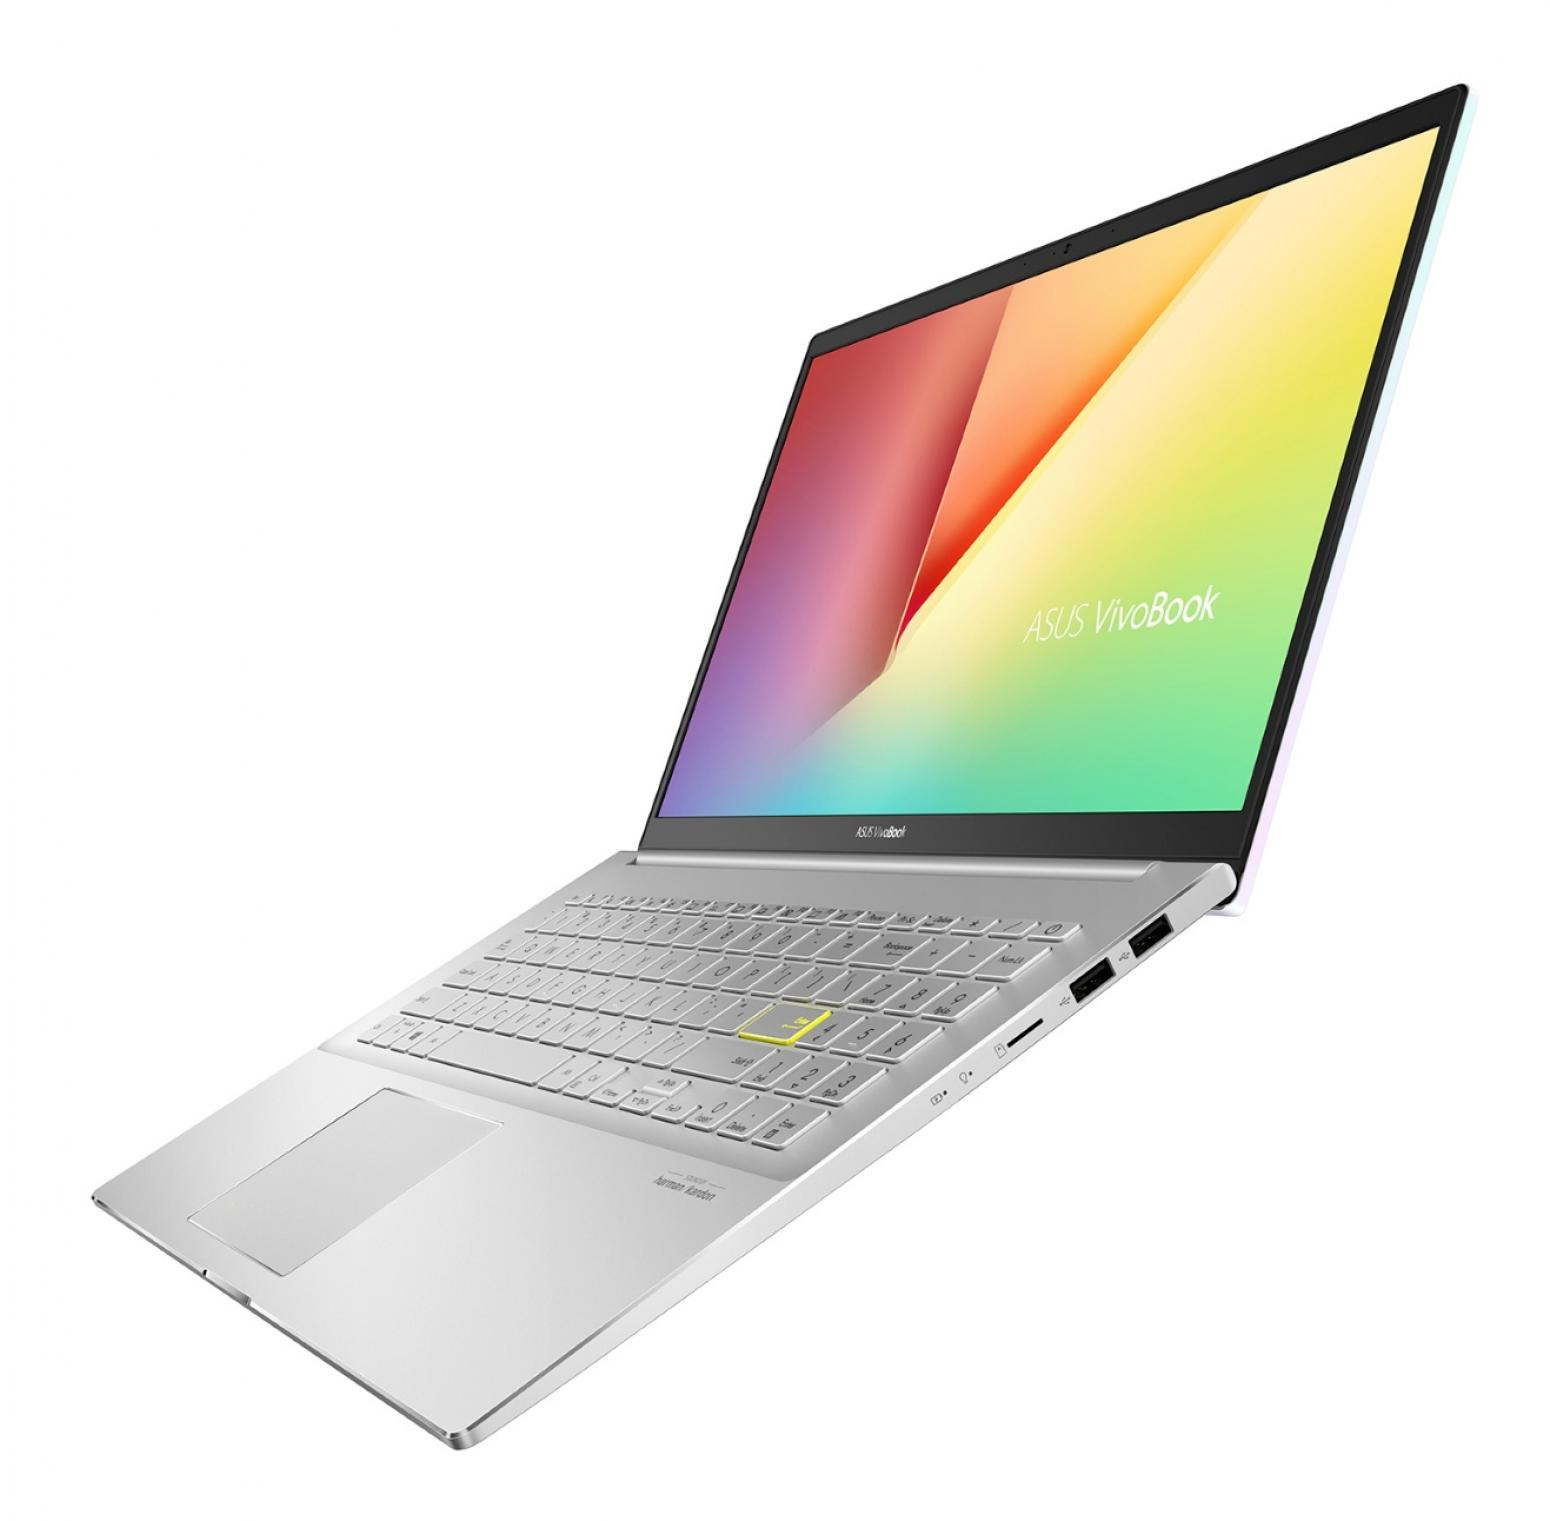 Ordinateur portable Asus Vivobook S533IA-BQ148T Dreamy White - Ryzen 5 Hexa Core - photo 6